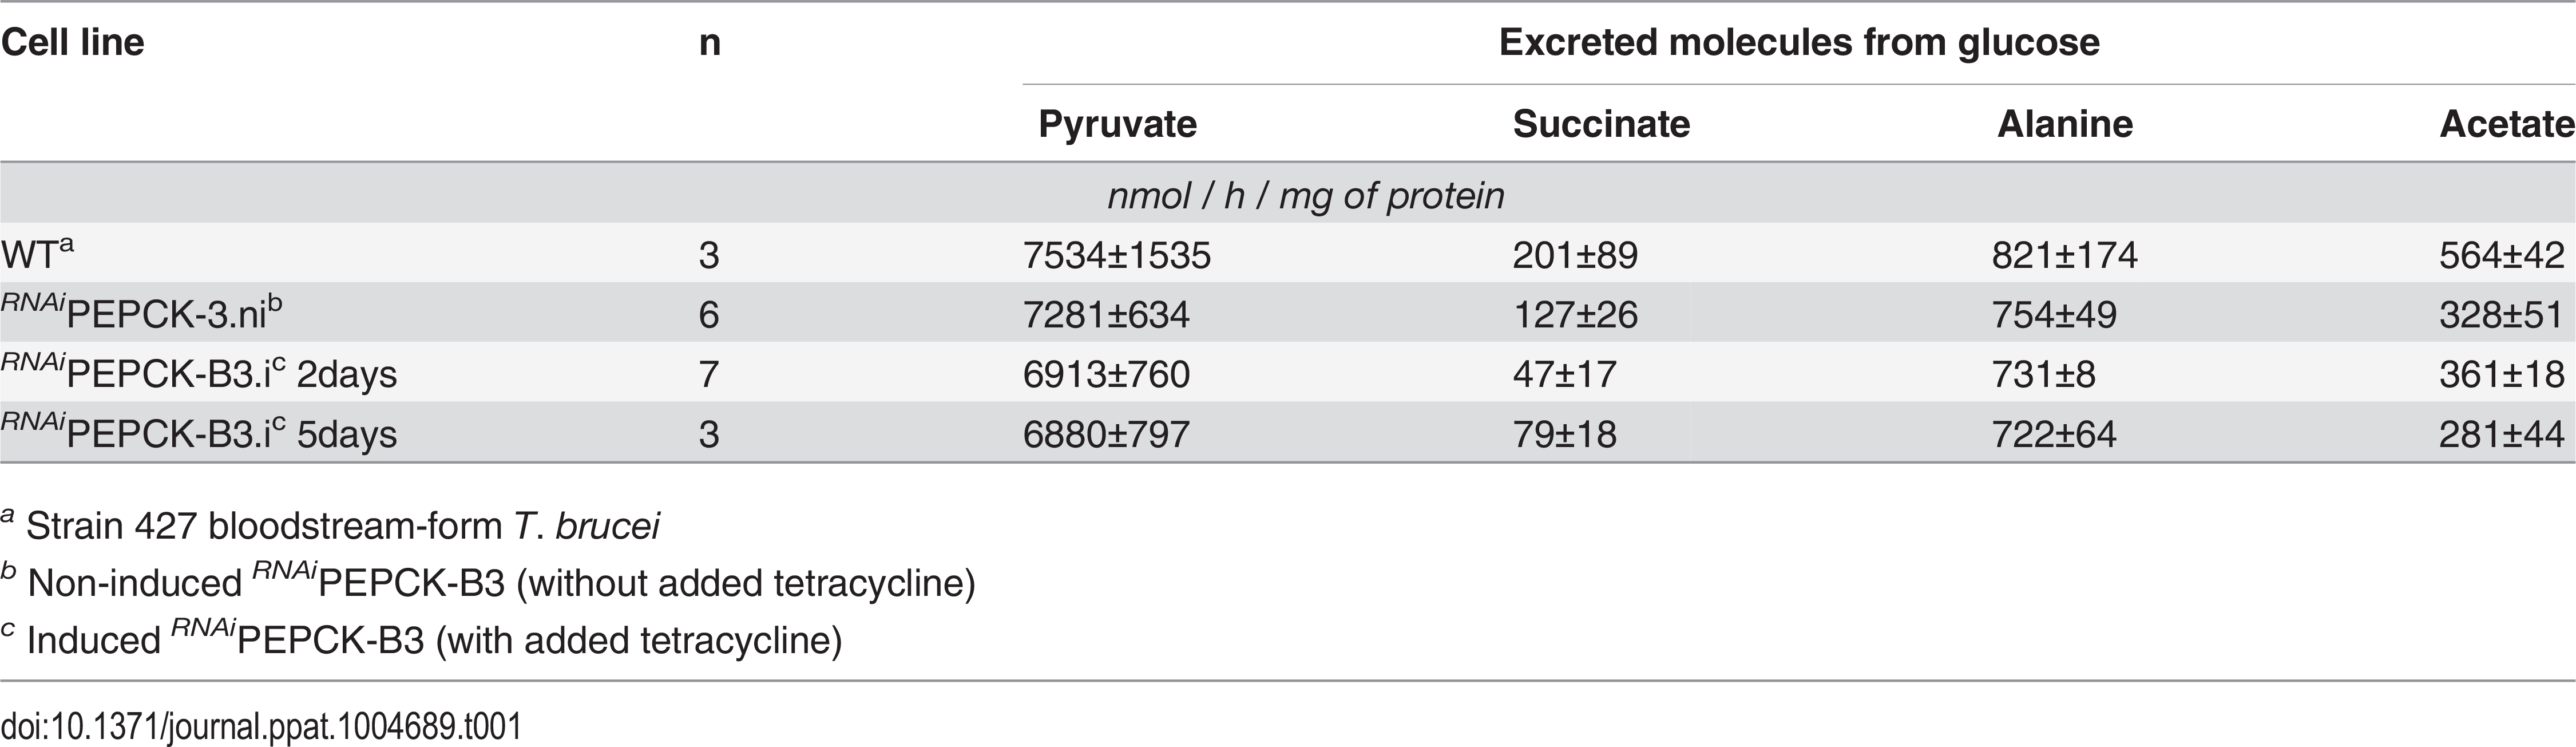 Production of succinate, pyruvate, alanine and acetate from glucose in PEPCK RNAi <i>T</i>. <i>brucei</i> measured by <sup>1</sup>H-NMR.